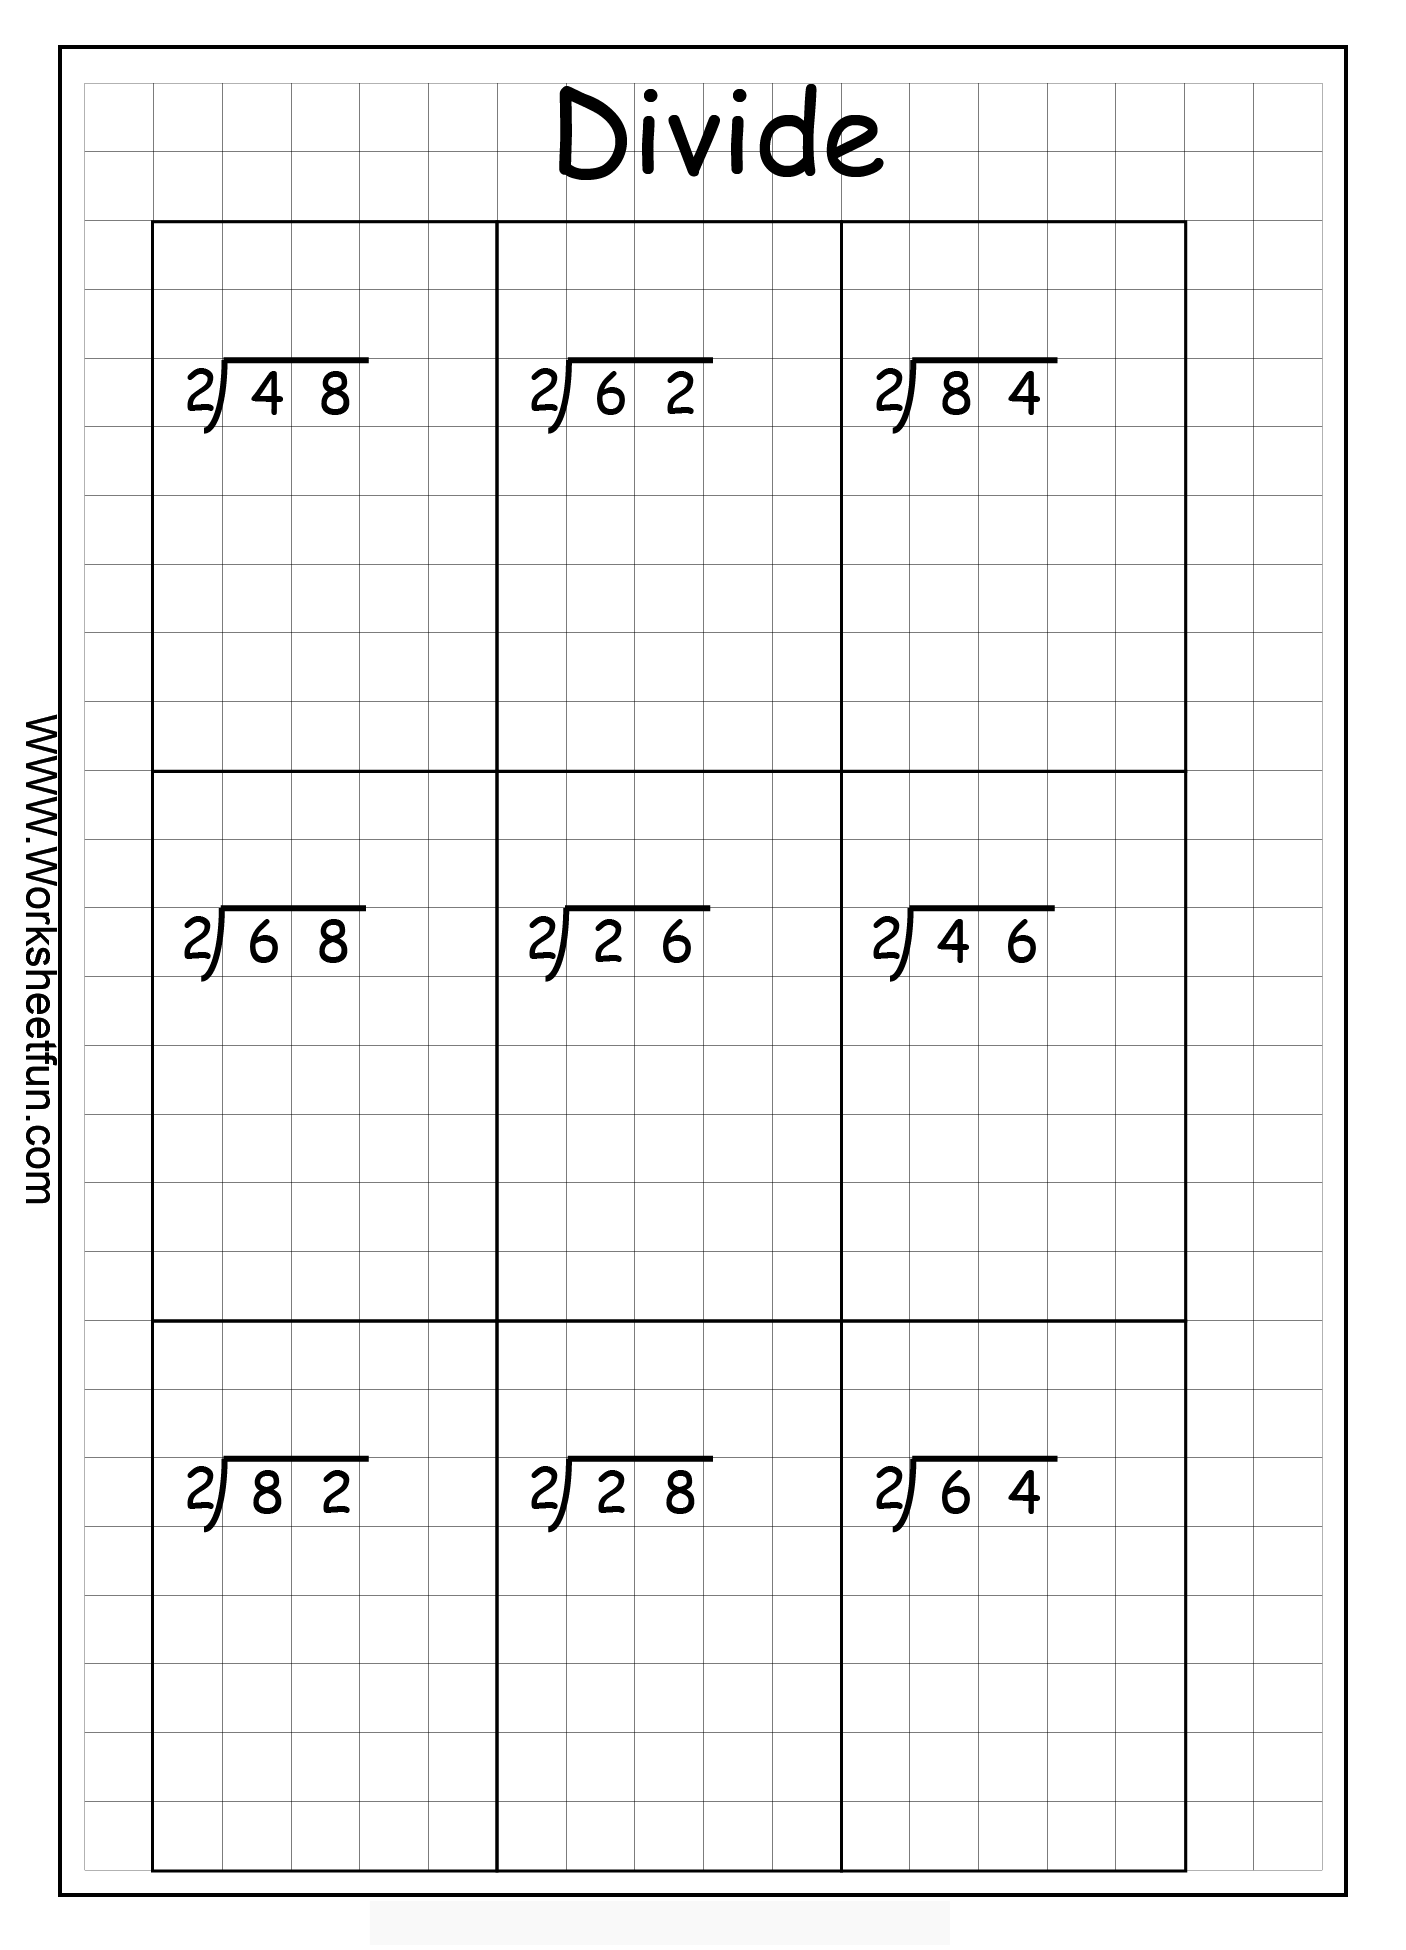 math worksheet : 1000 images about division worksheets on pinterest  division  : 3 Digit Long Division Worksheets